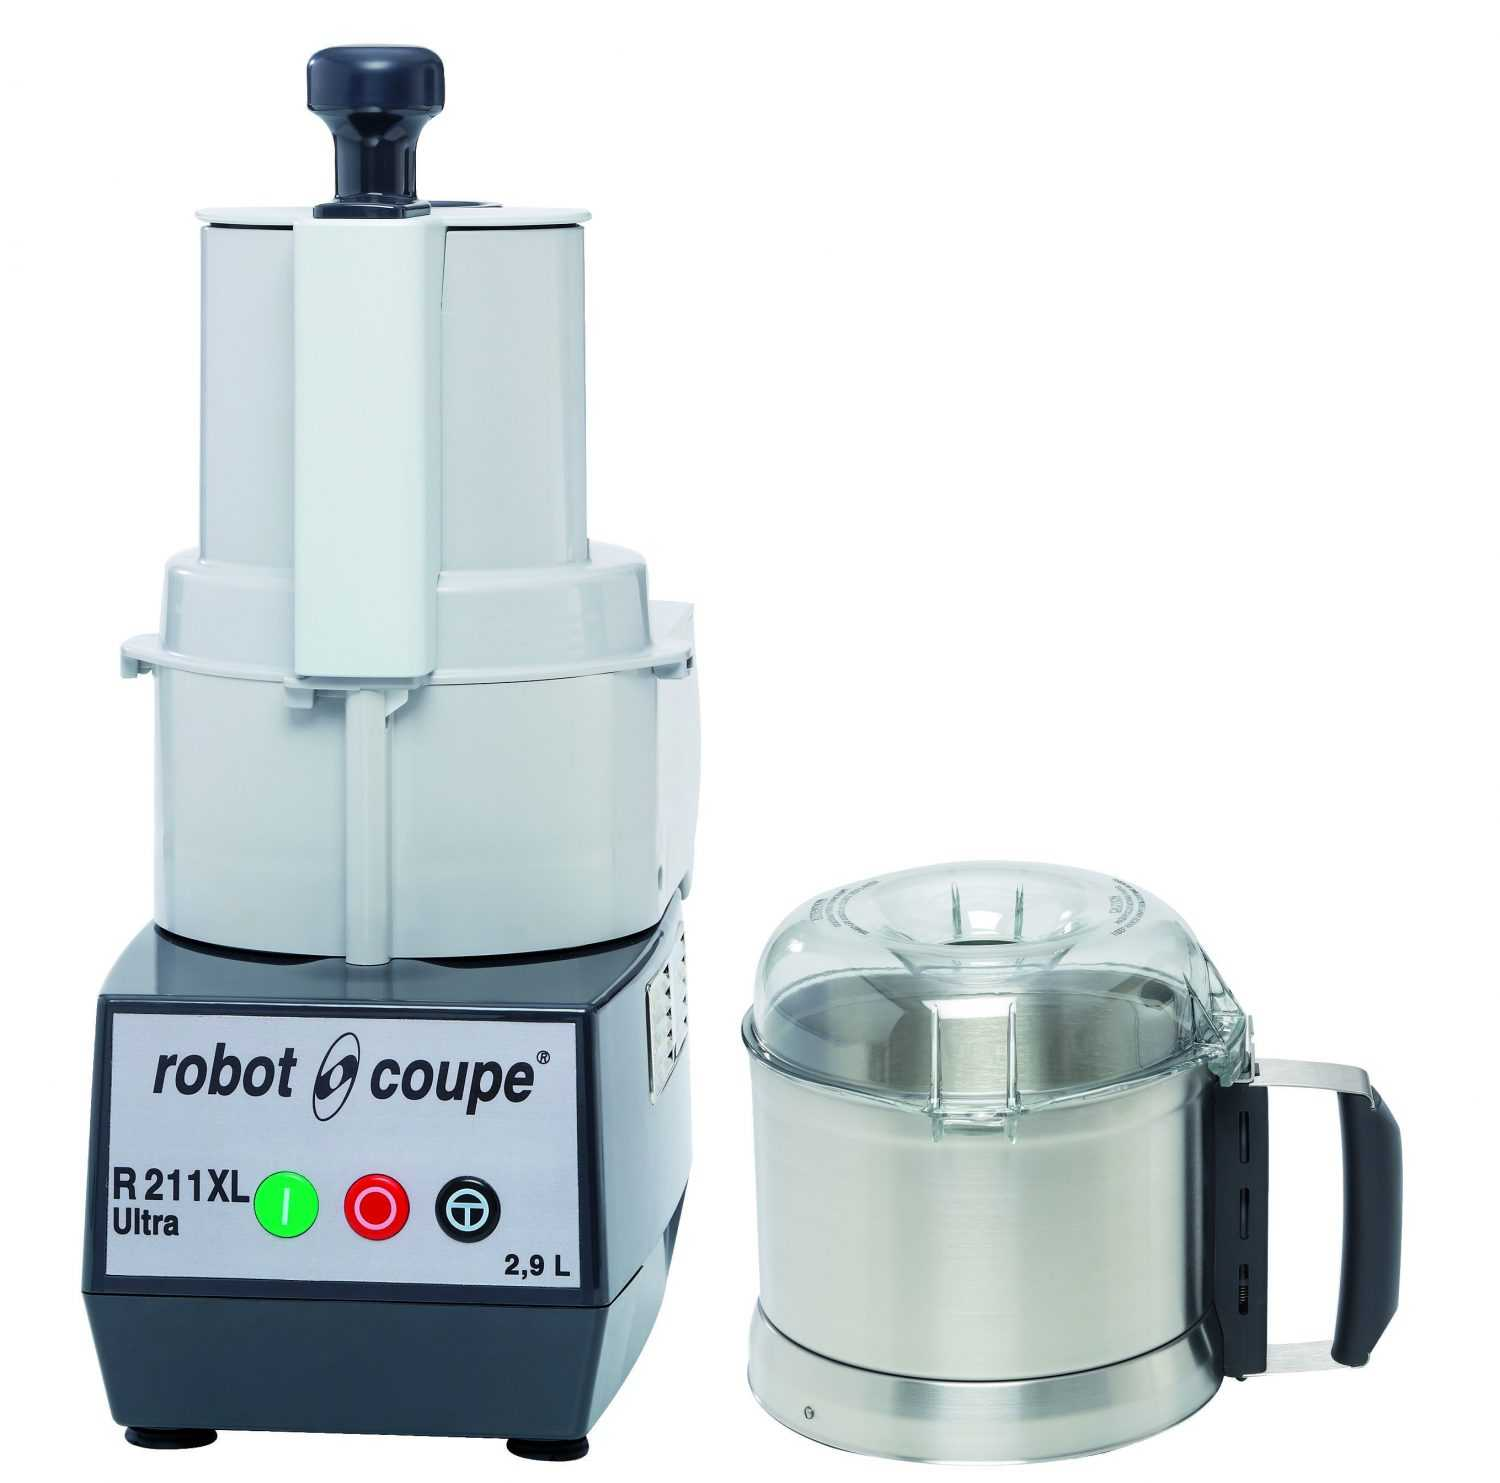 Robot Coupe R211 XL Ultra Food Processor without Discs